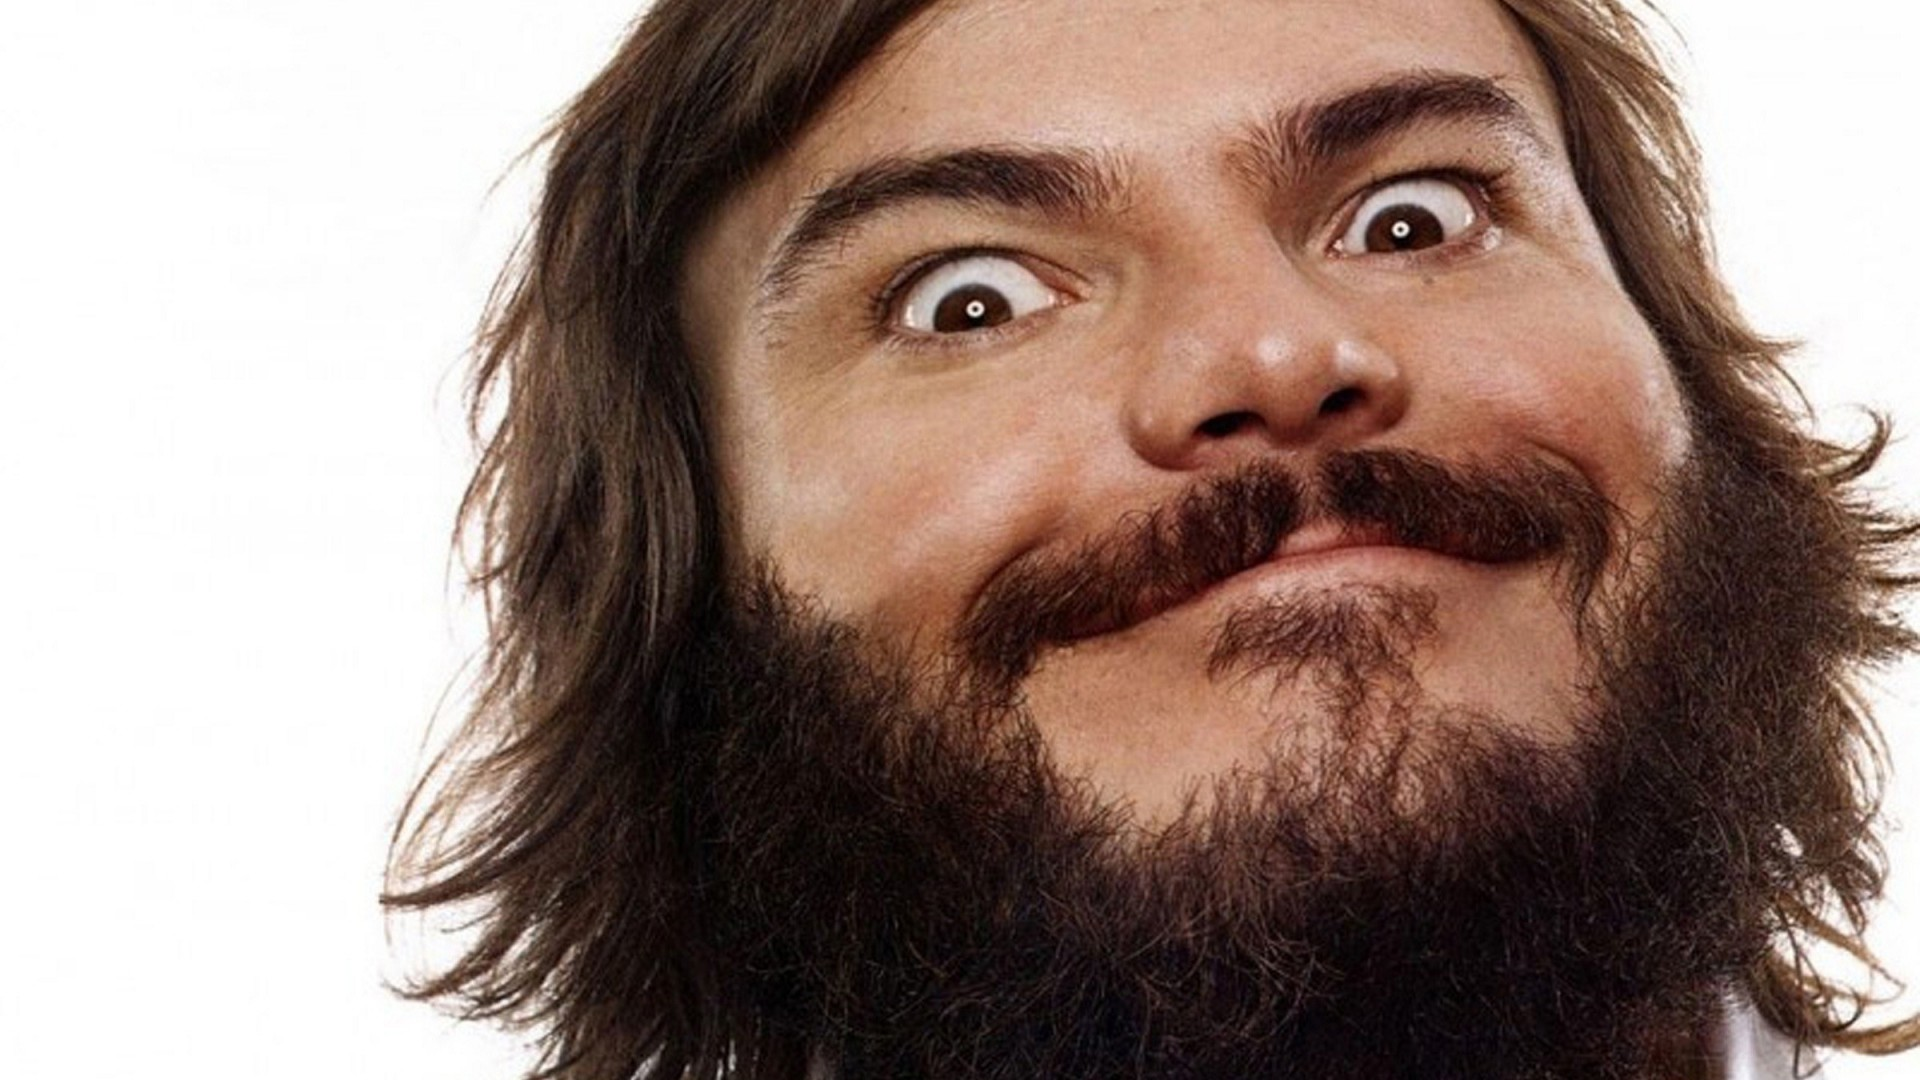 Jack Black Crazy Beard HD Wallpaper HD Wallpapers